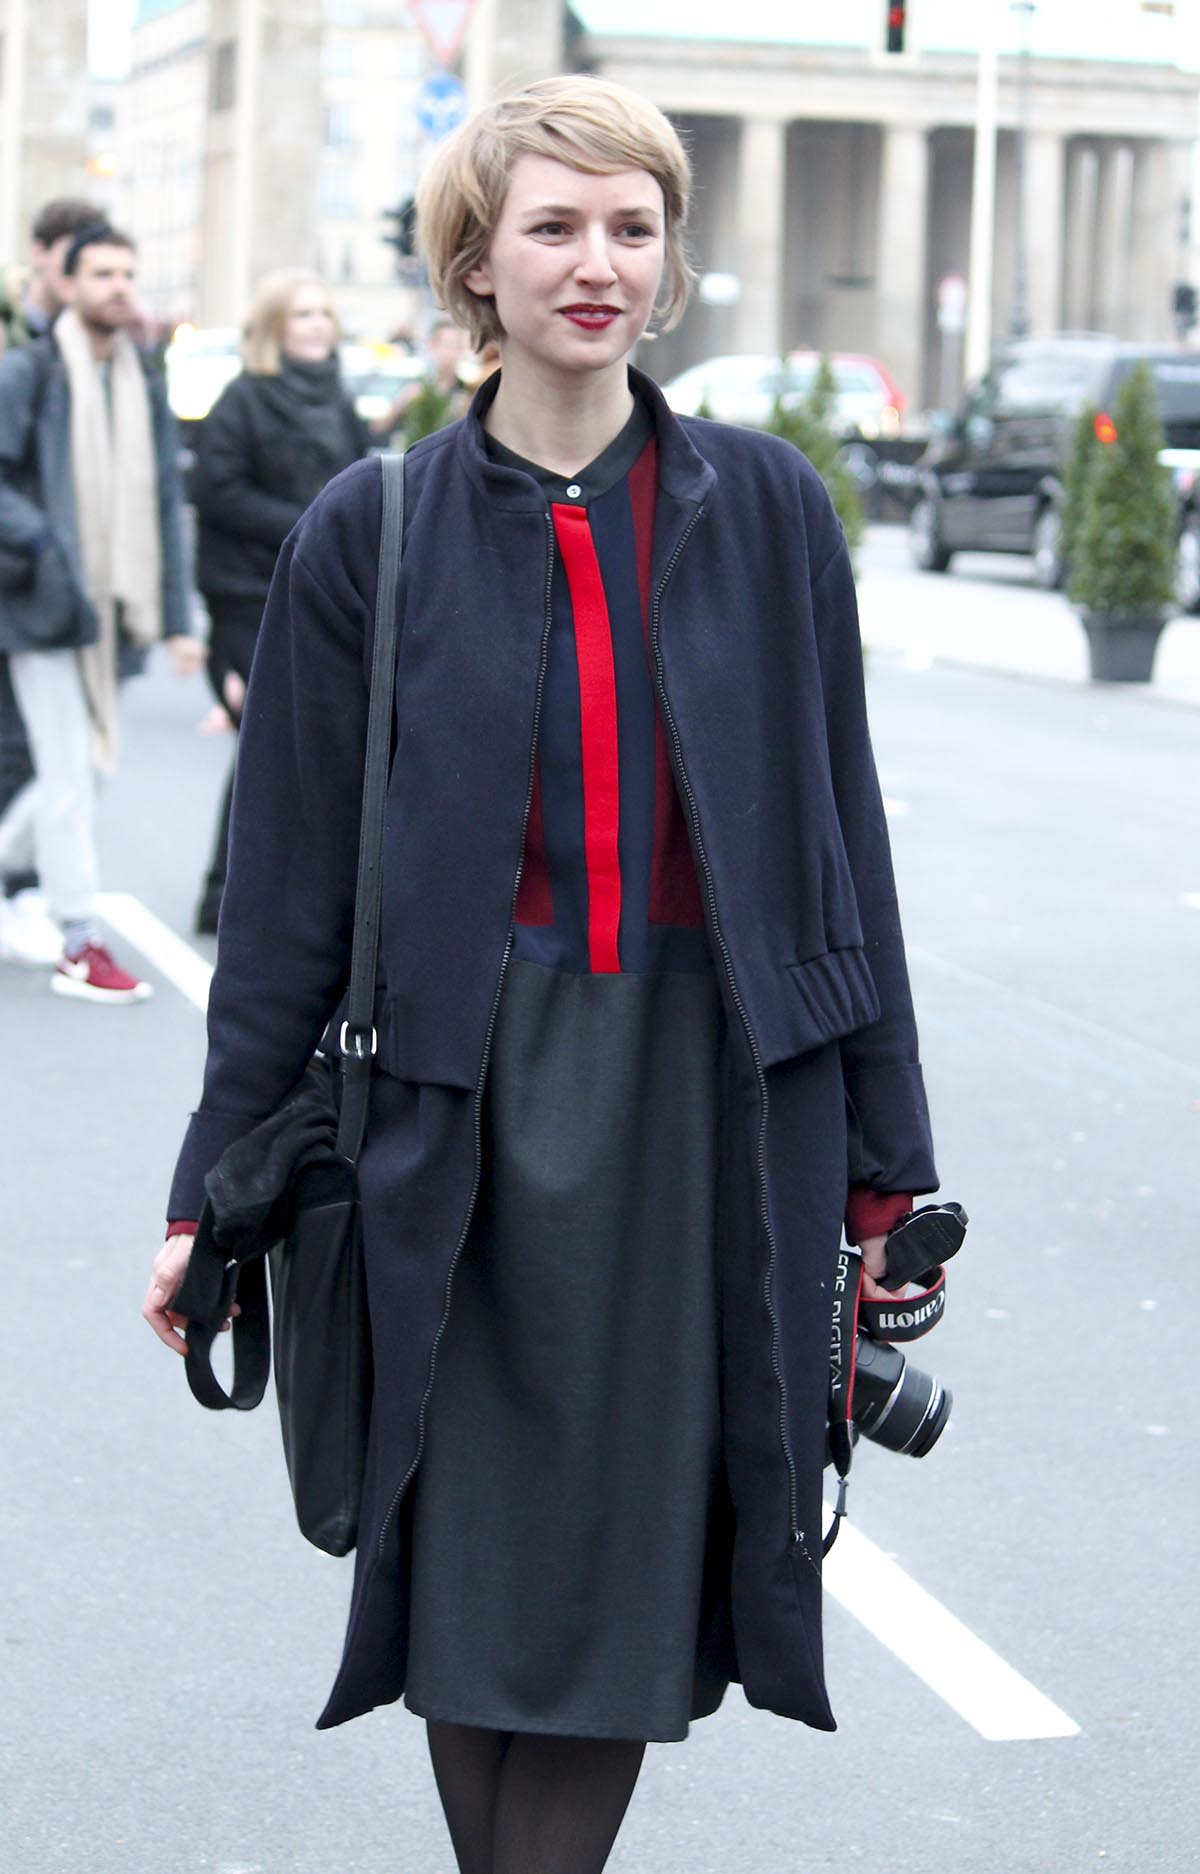 MM_Streetstyle_Tag2_08